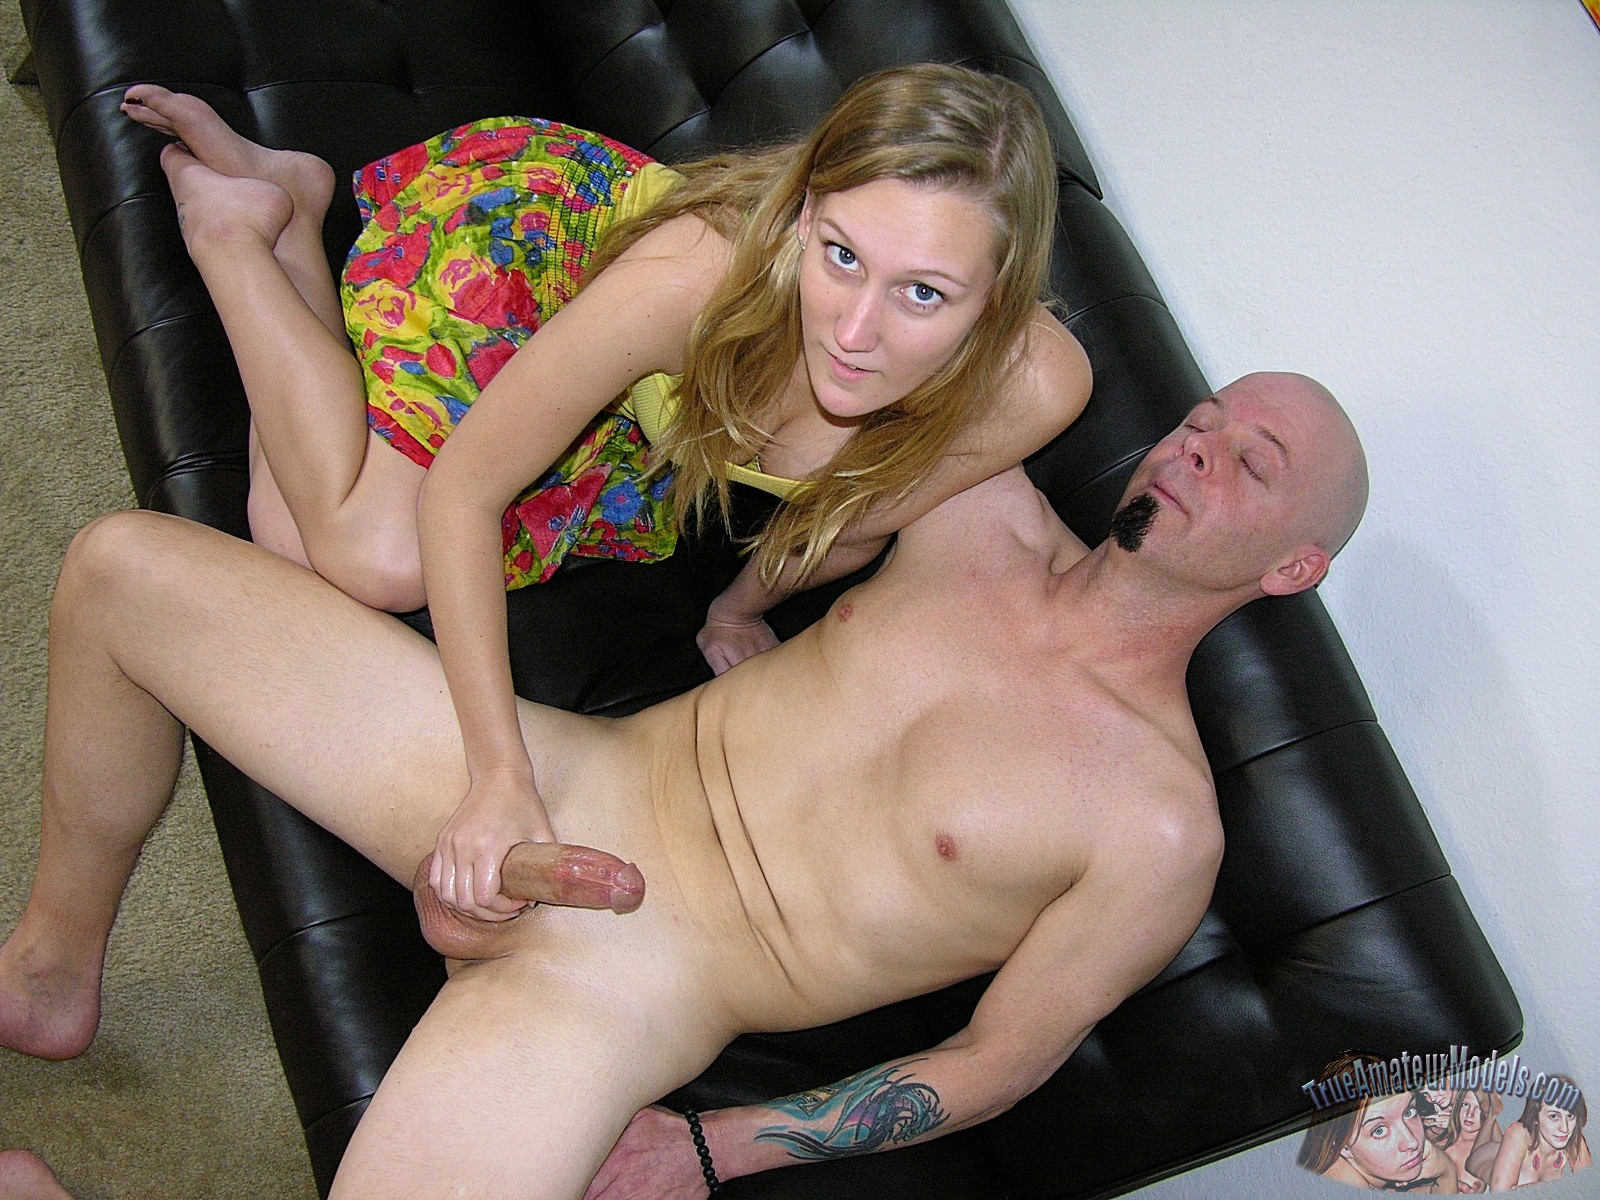 that can not tiffany jade hardcore banged in bed in sex scene that interrupt you, there